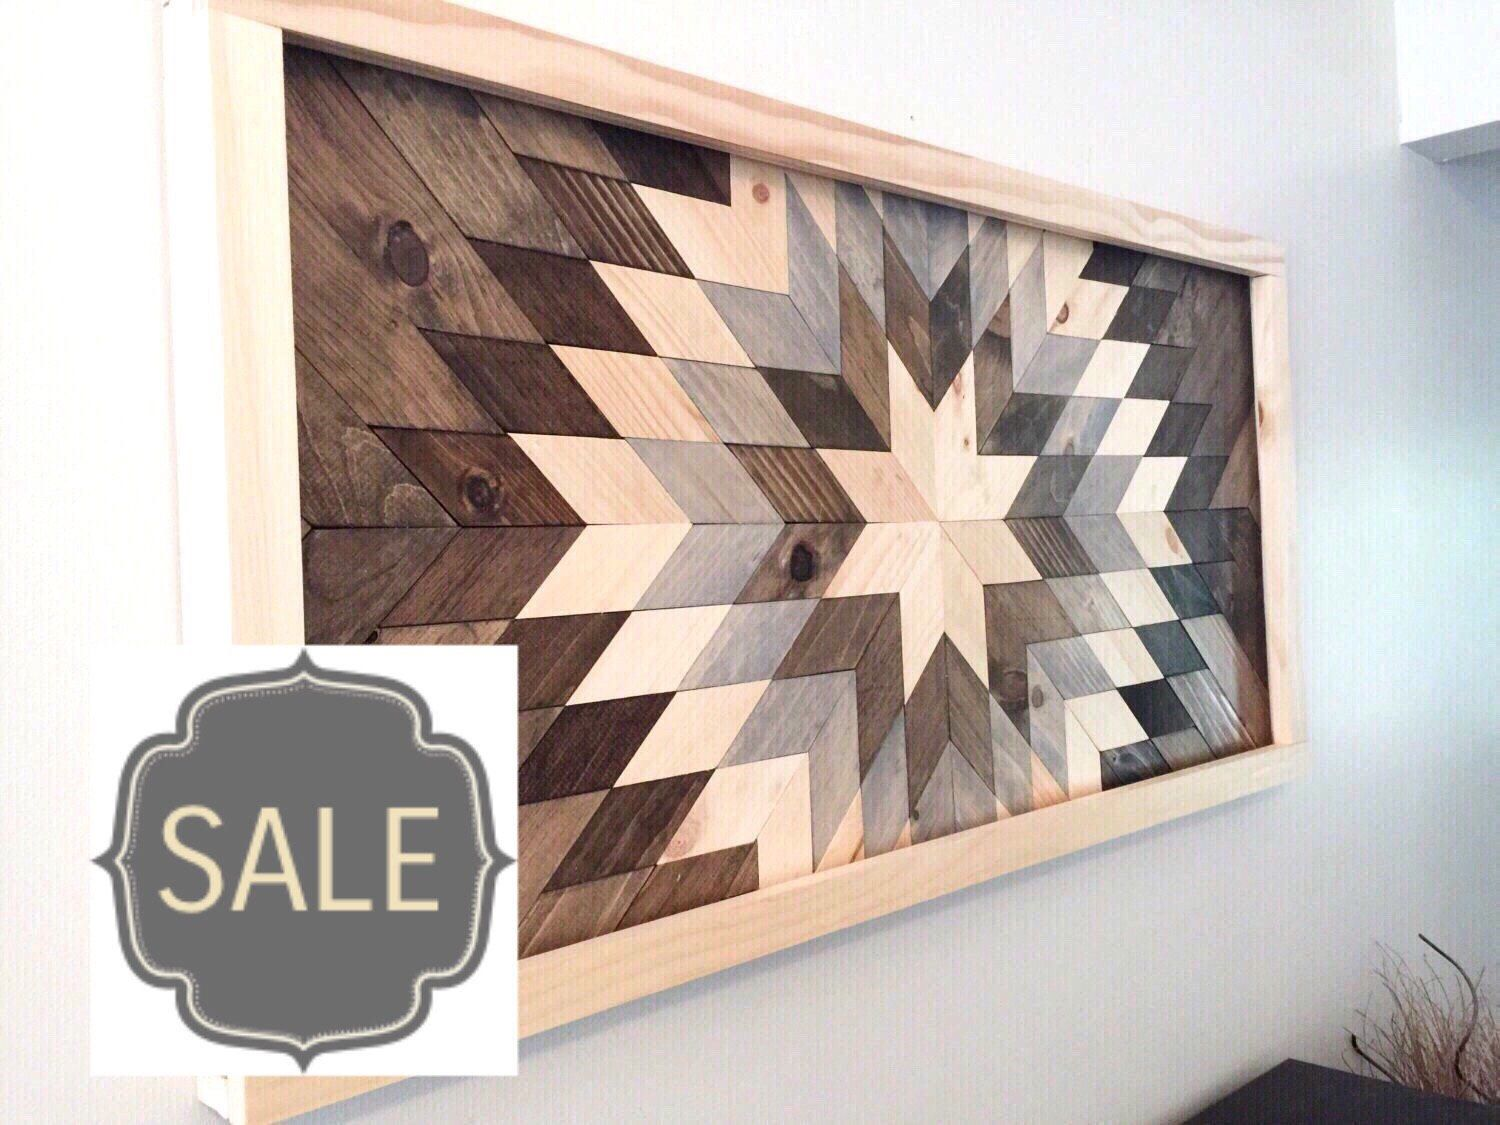 Merveilleux SALE* Reclaimed Wood Wall Art, Wood Wall Decor, Wood Art, Modern Wall